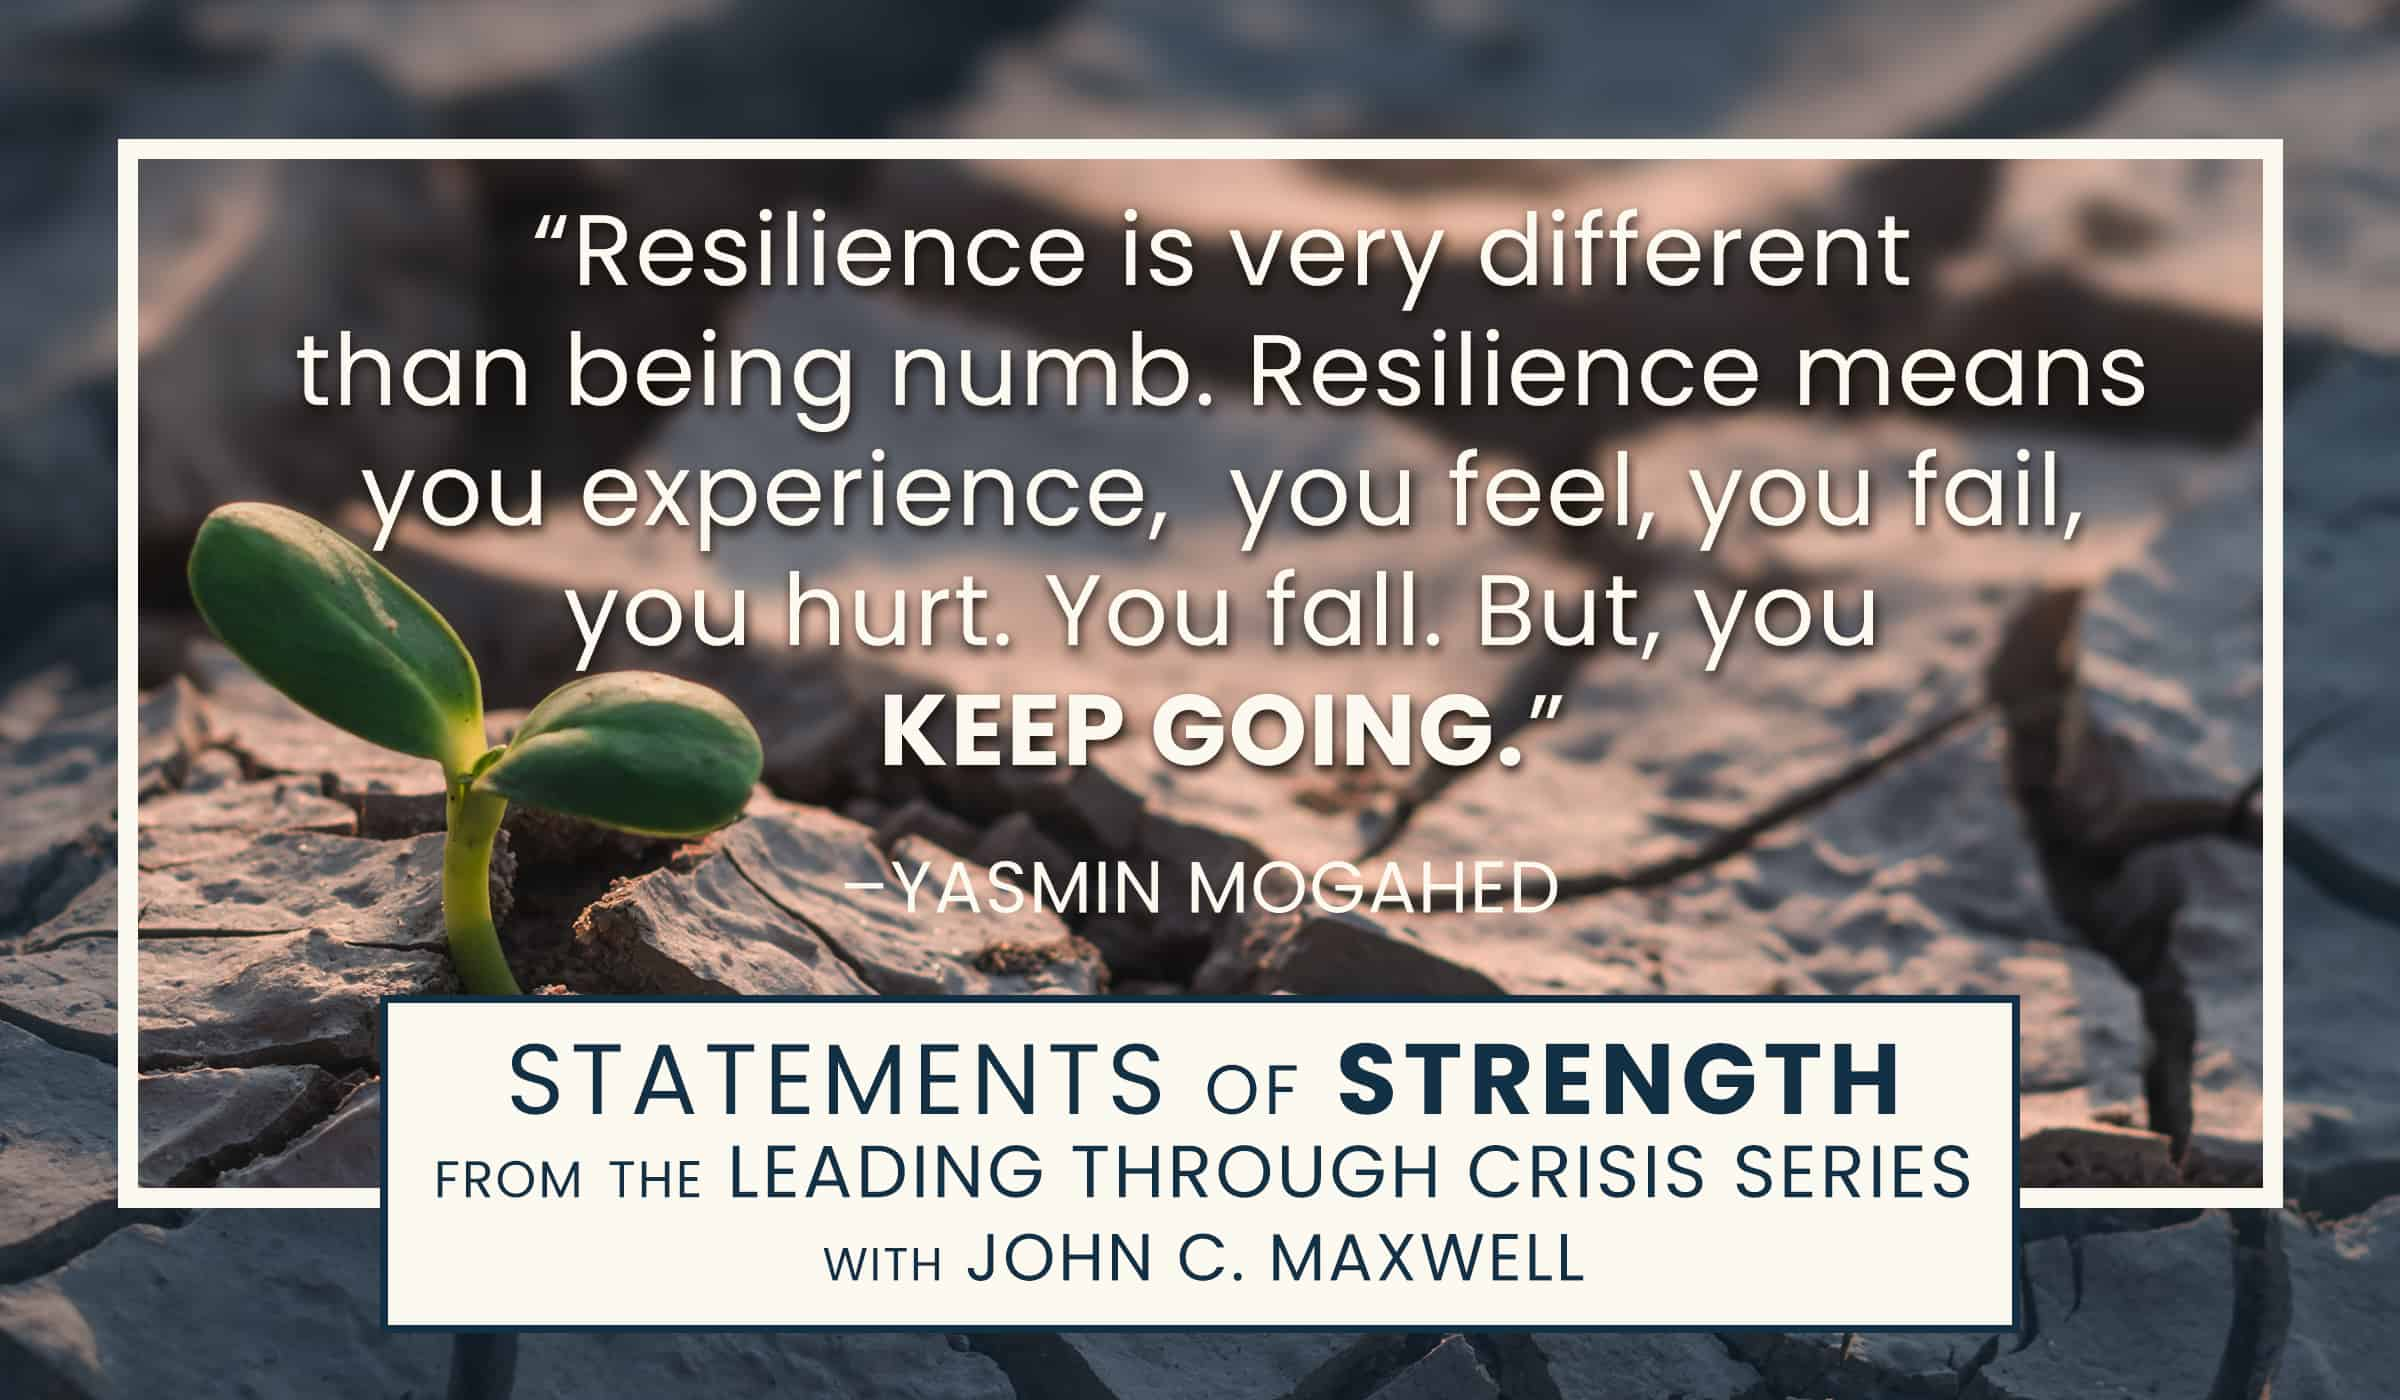 image of quote picture with quotation from yasmin mogahed on resilience